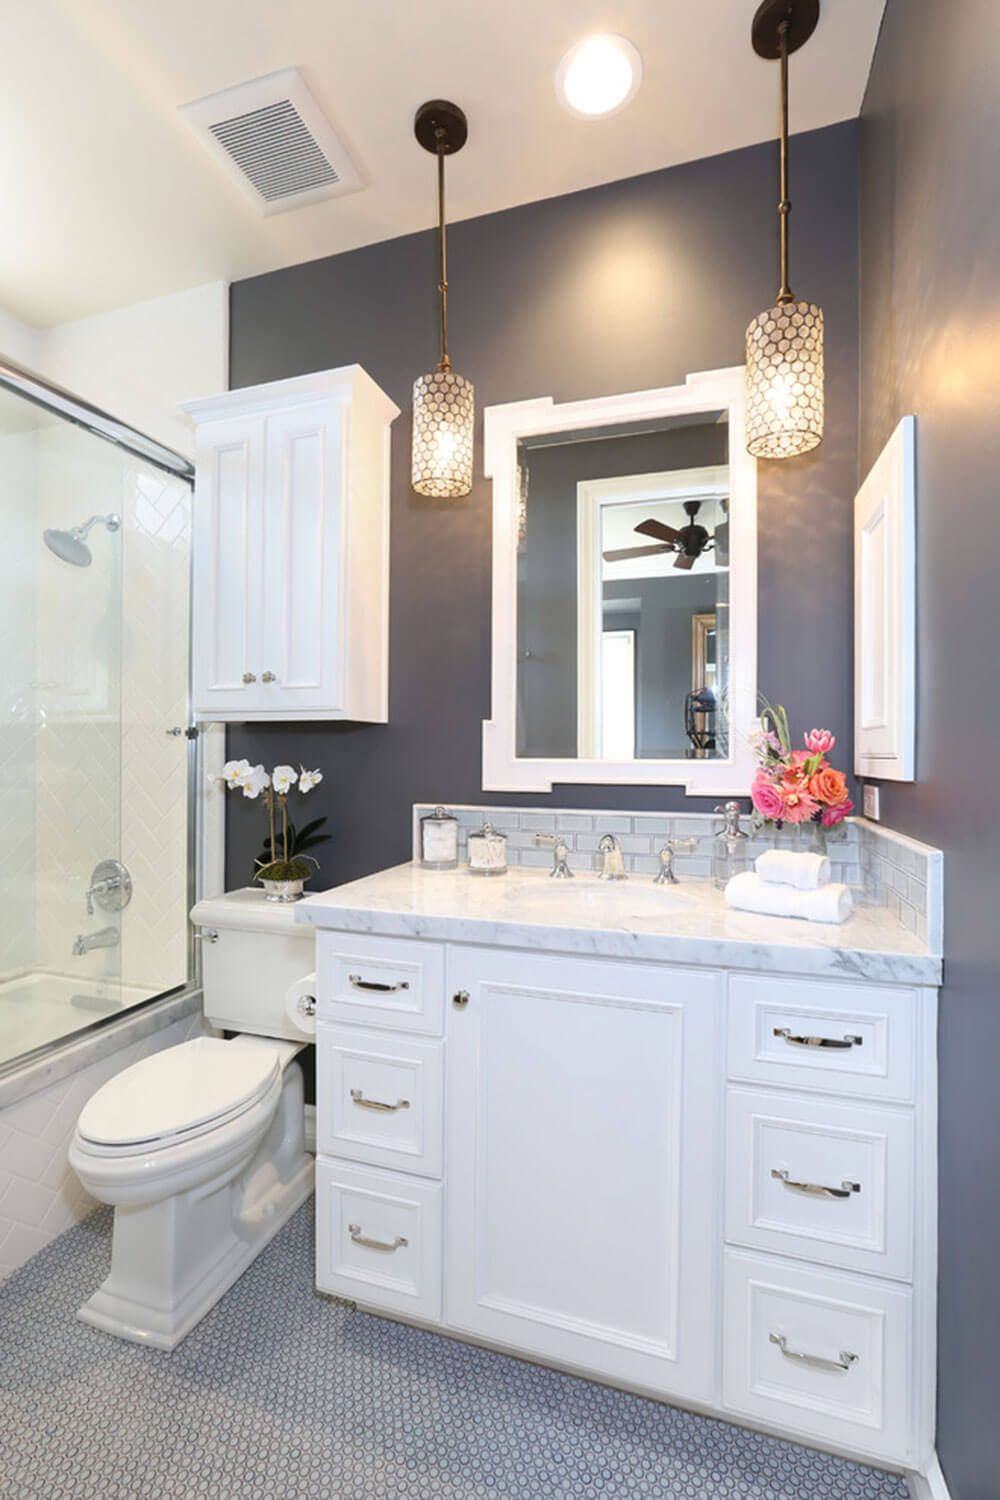 32 Small Bathroom Design Ideas for Every Taste | Bathroom Ideas ...